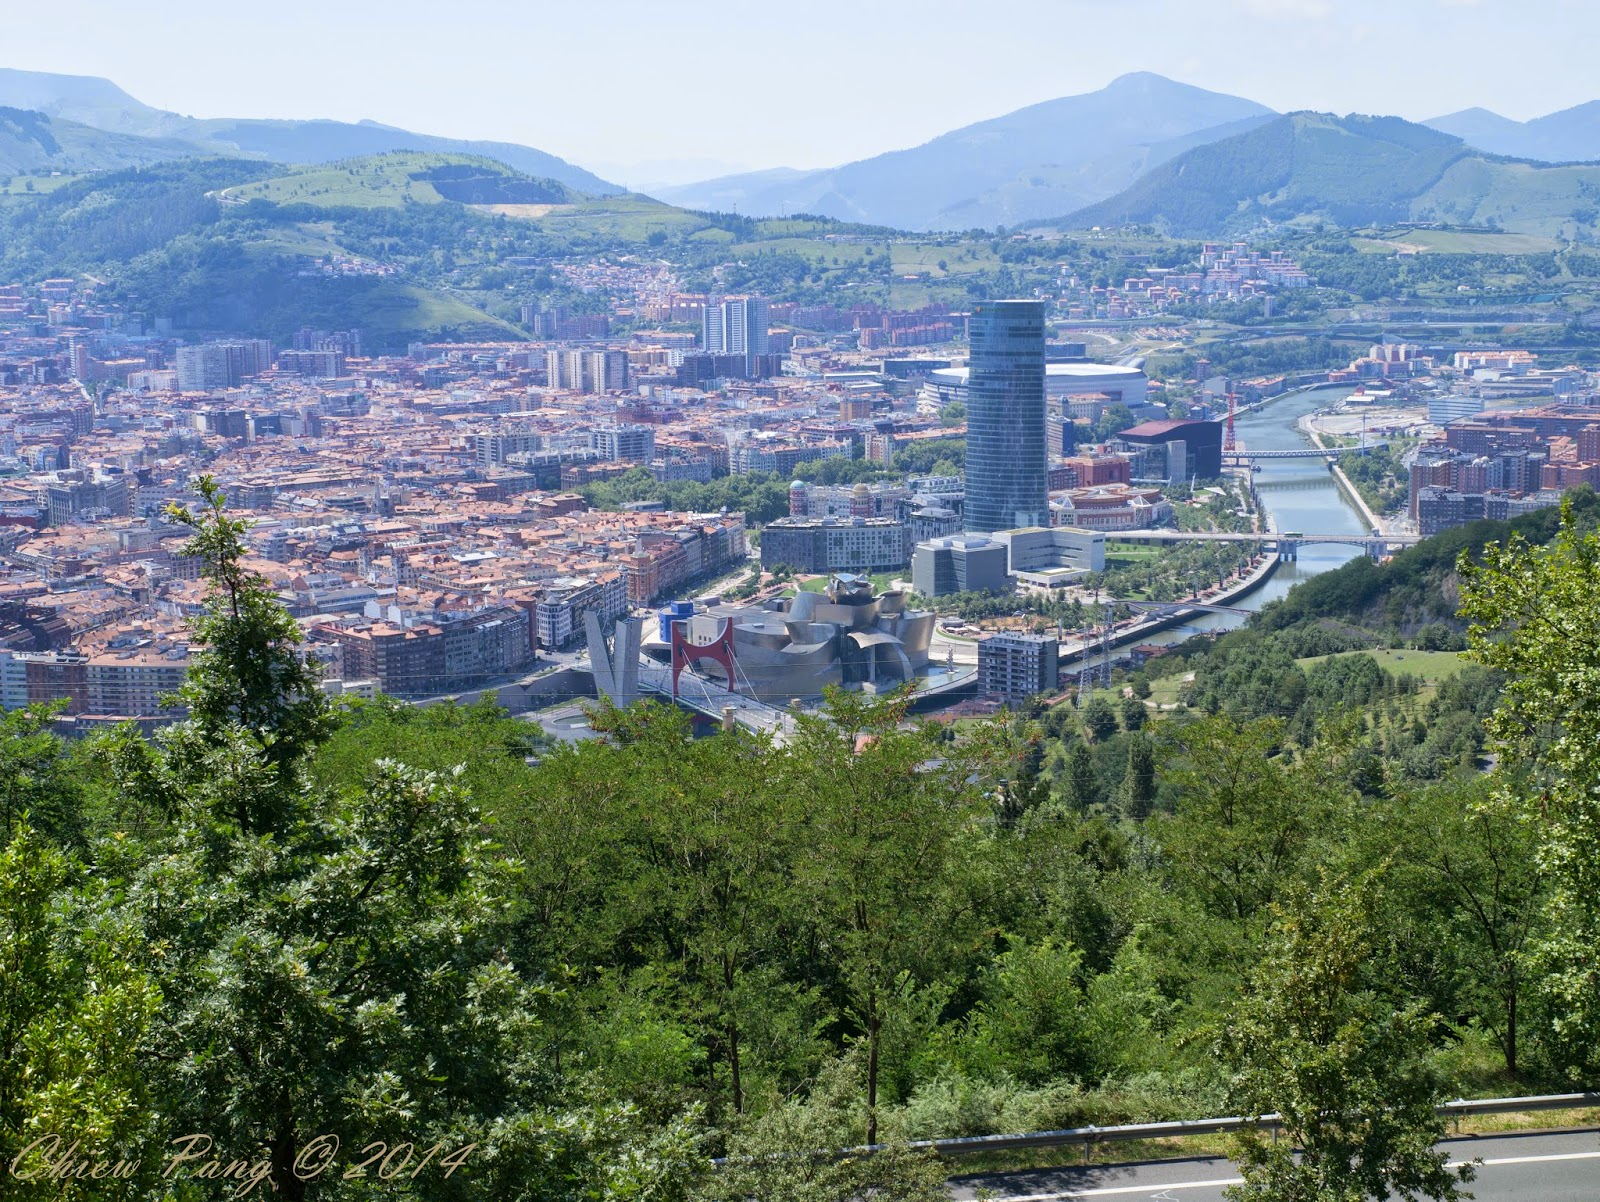 Bilbao in harsh daylight